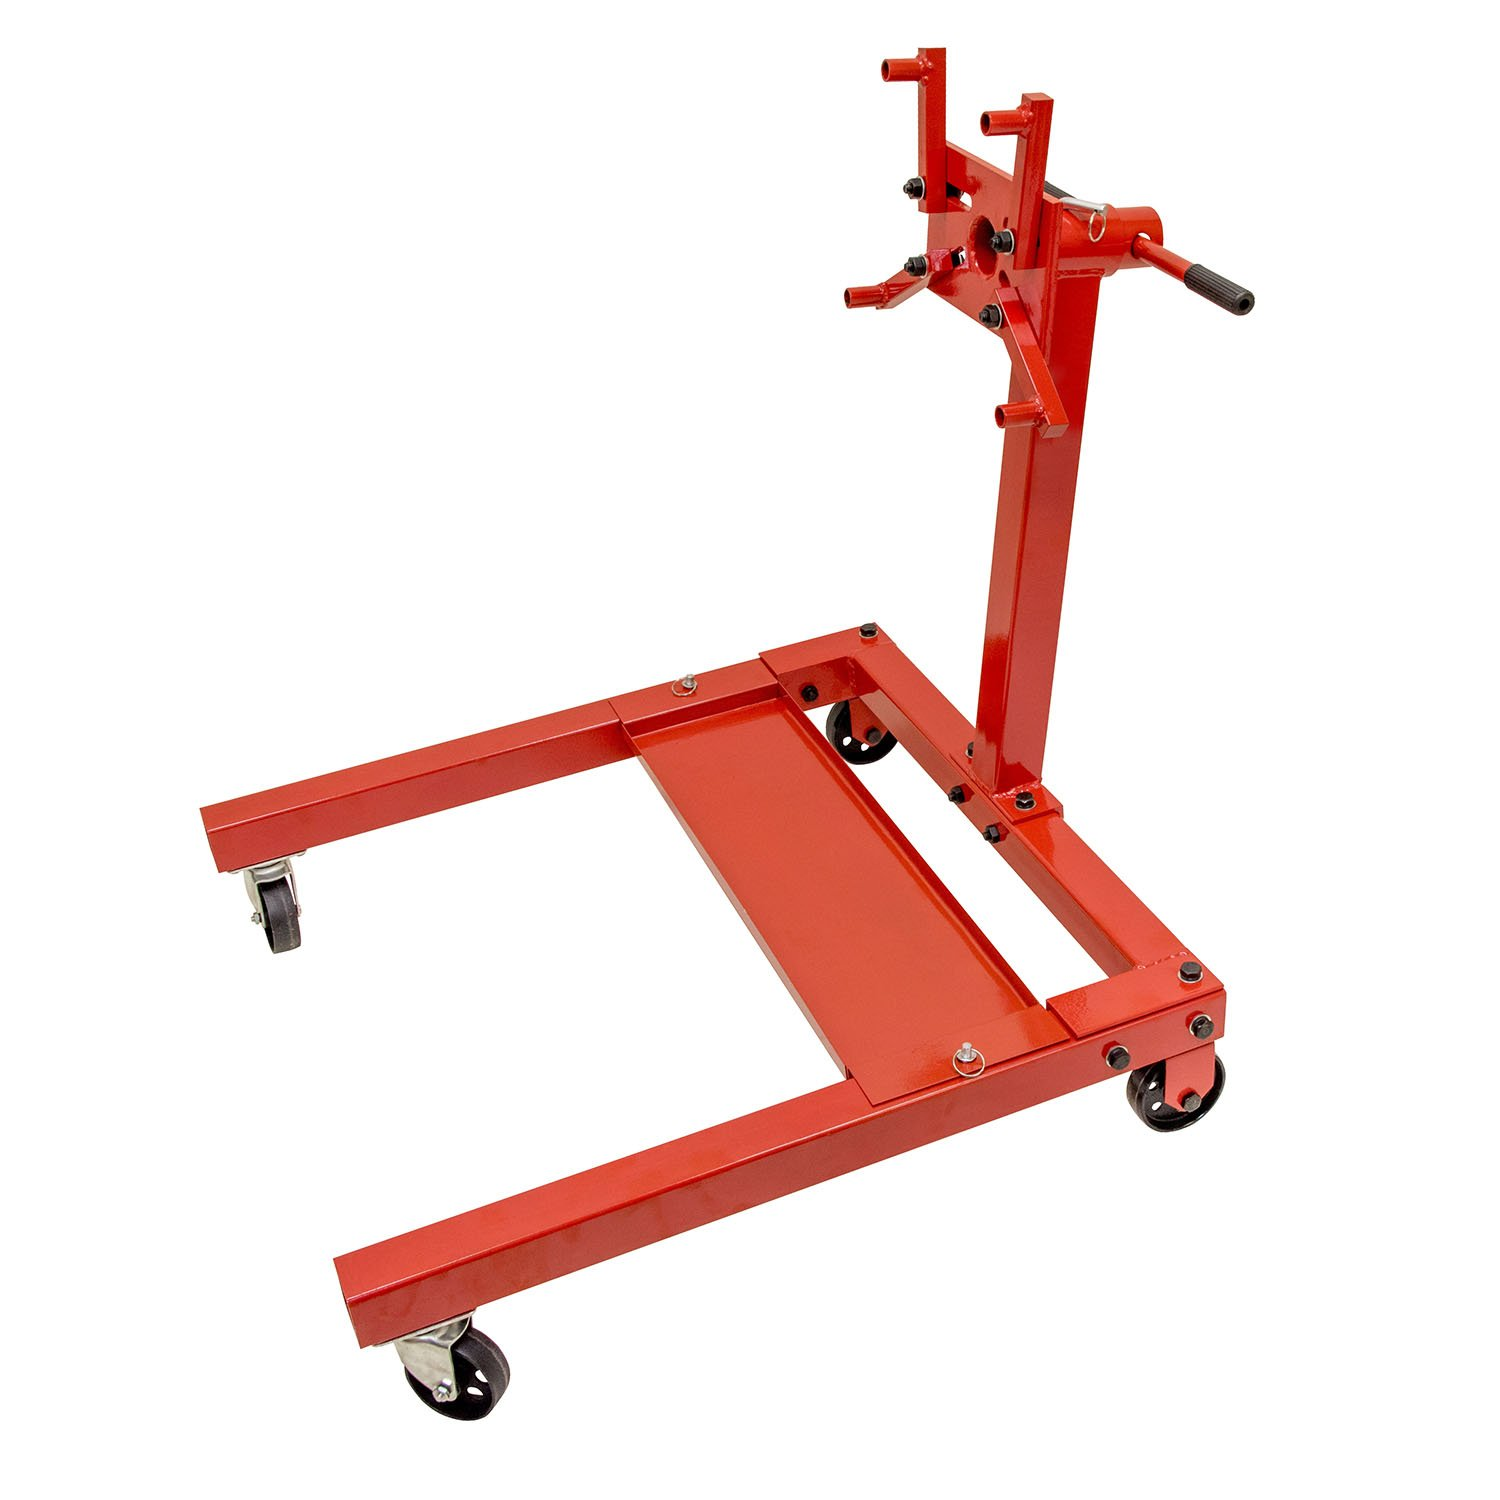 OEMTOOLS 24829 Engine Stand (1250 Lb)